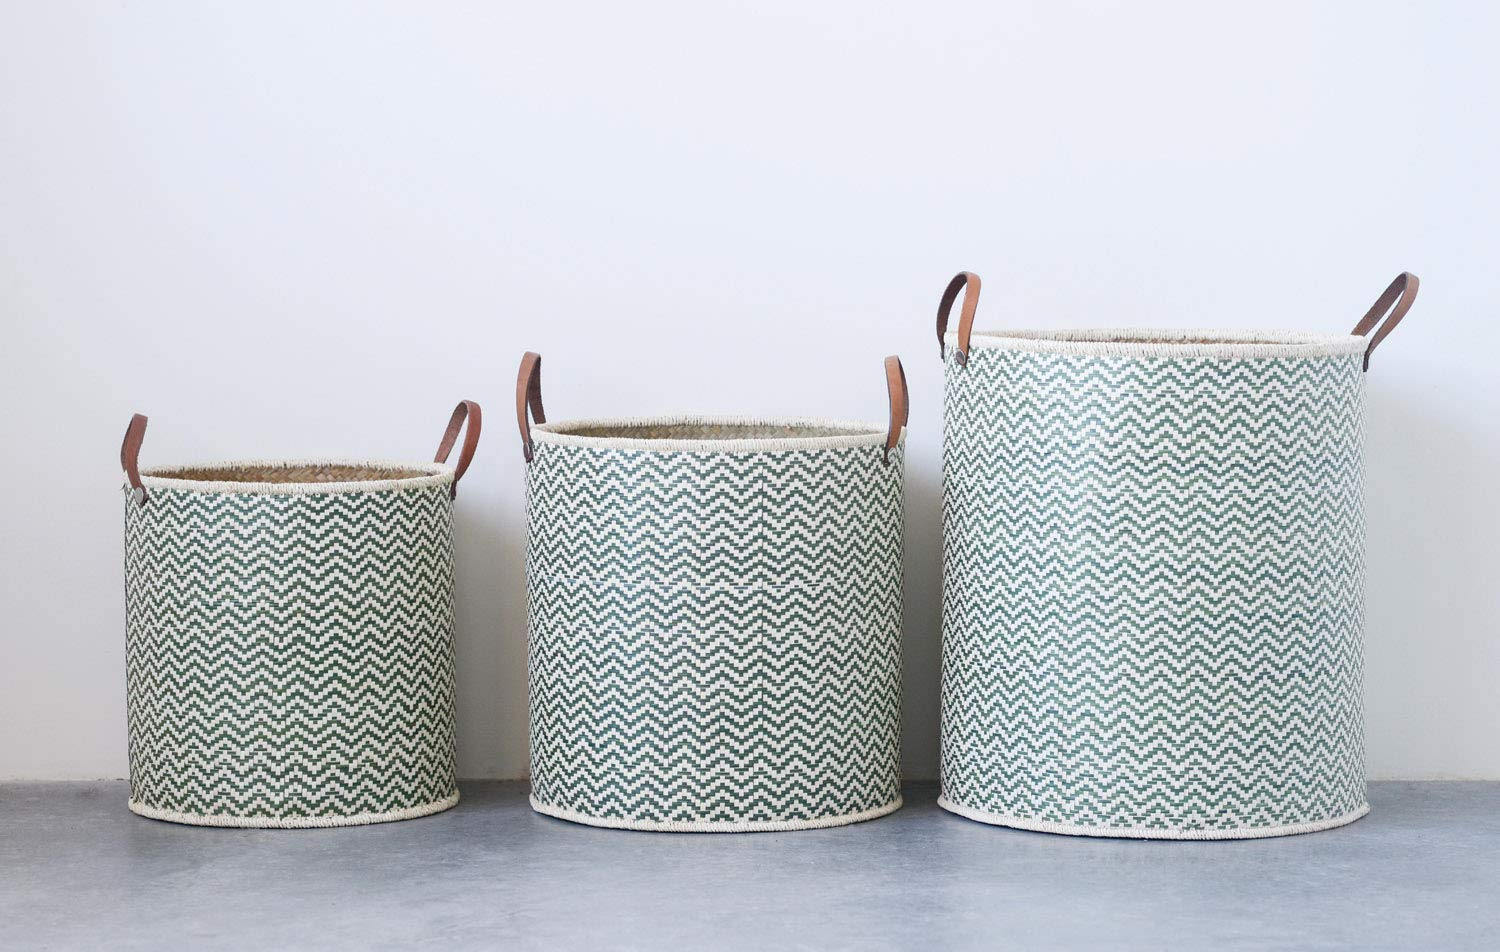 Creative Co-Op Set of 3 Round Seagrass Baskets with Leather Handles